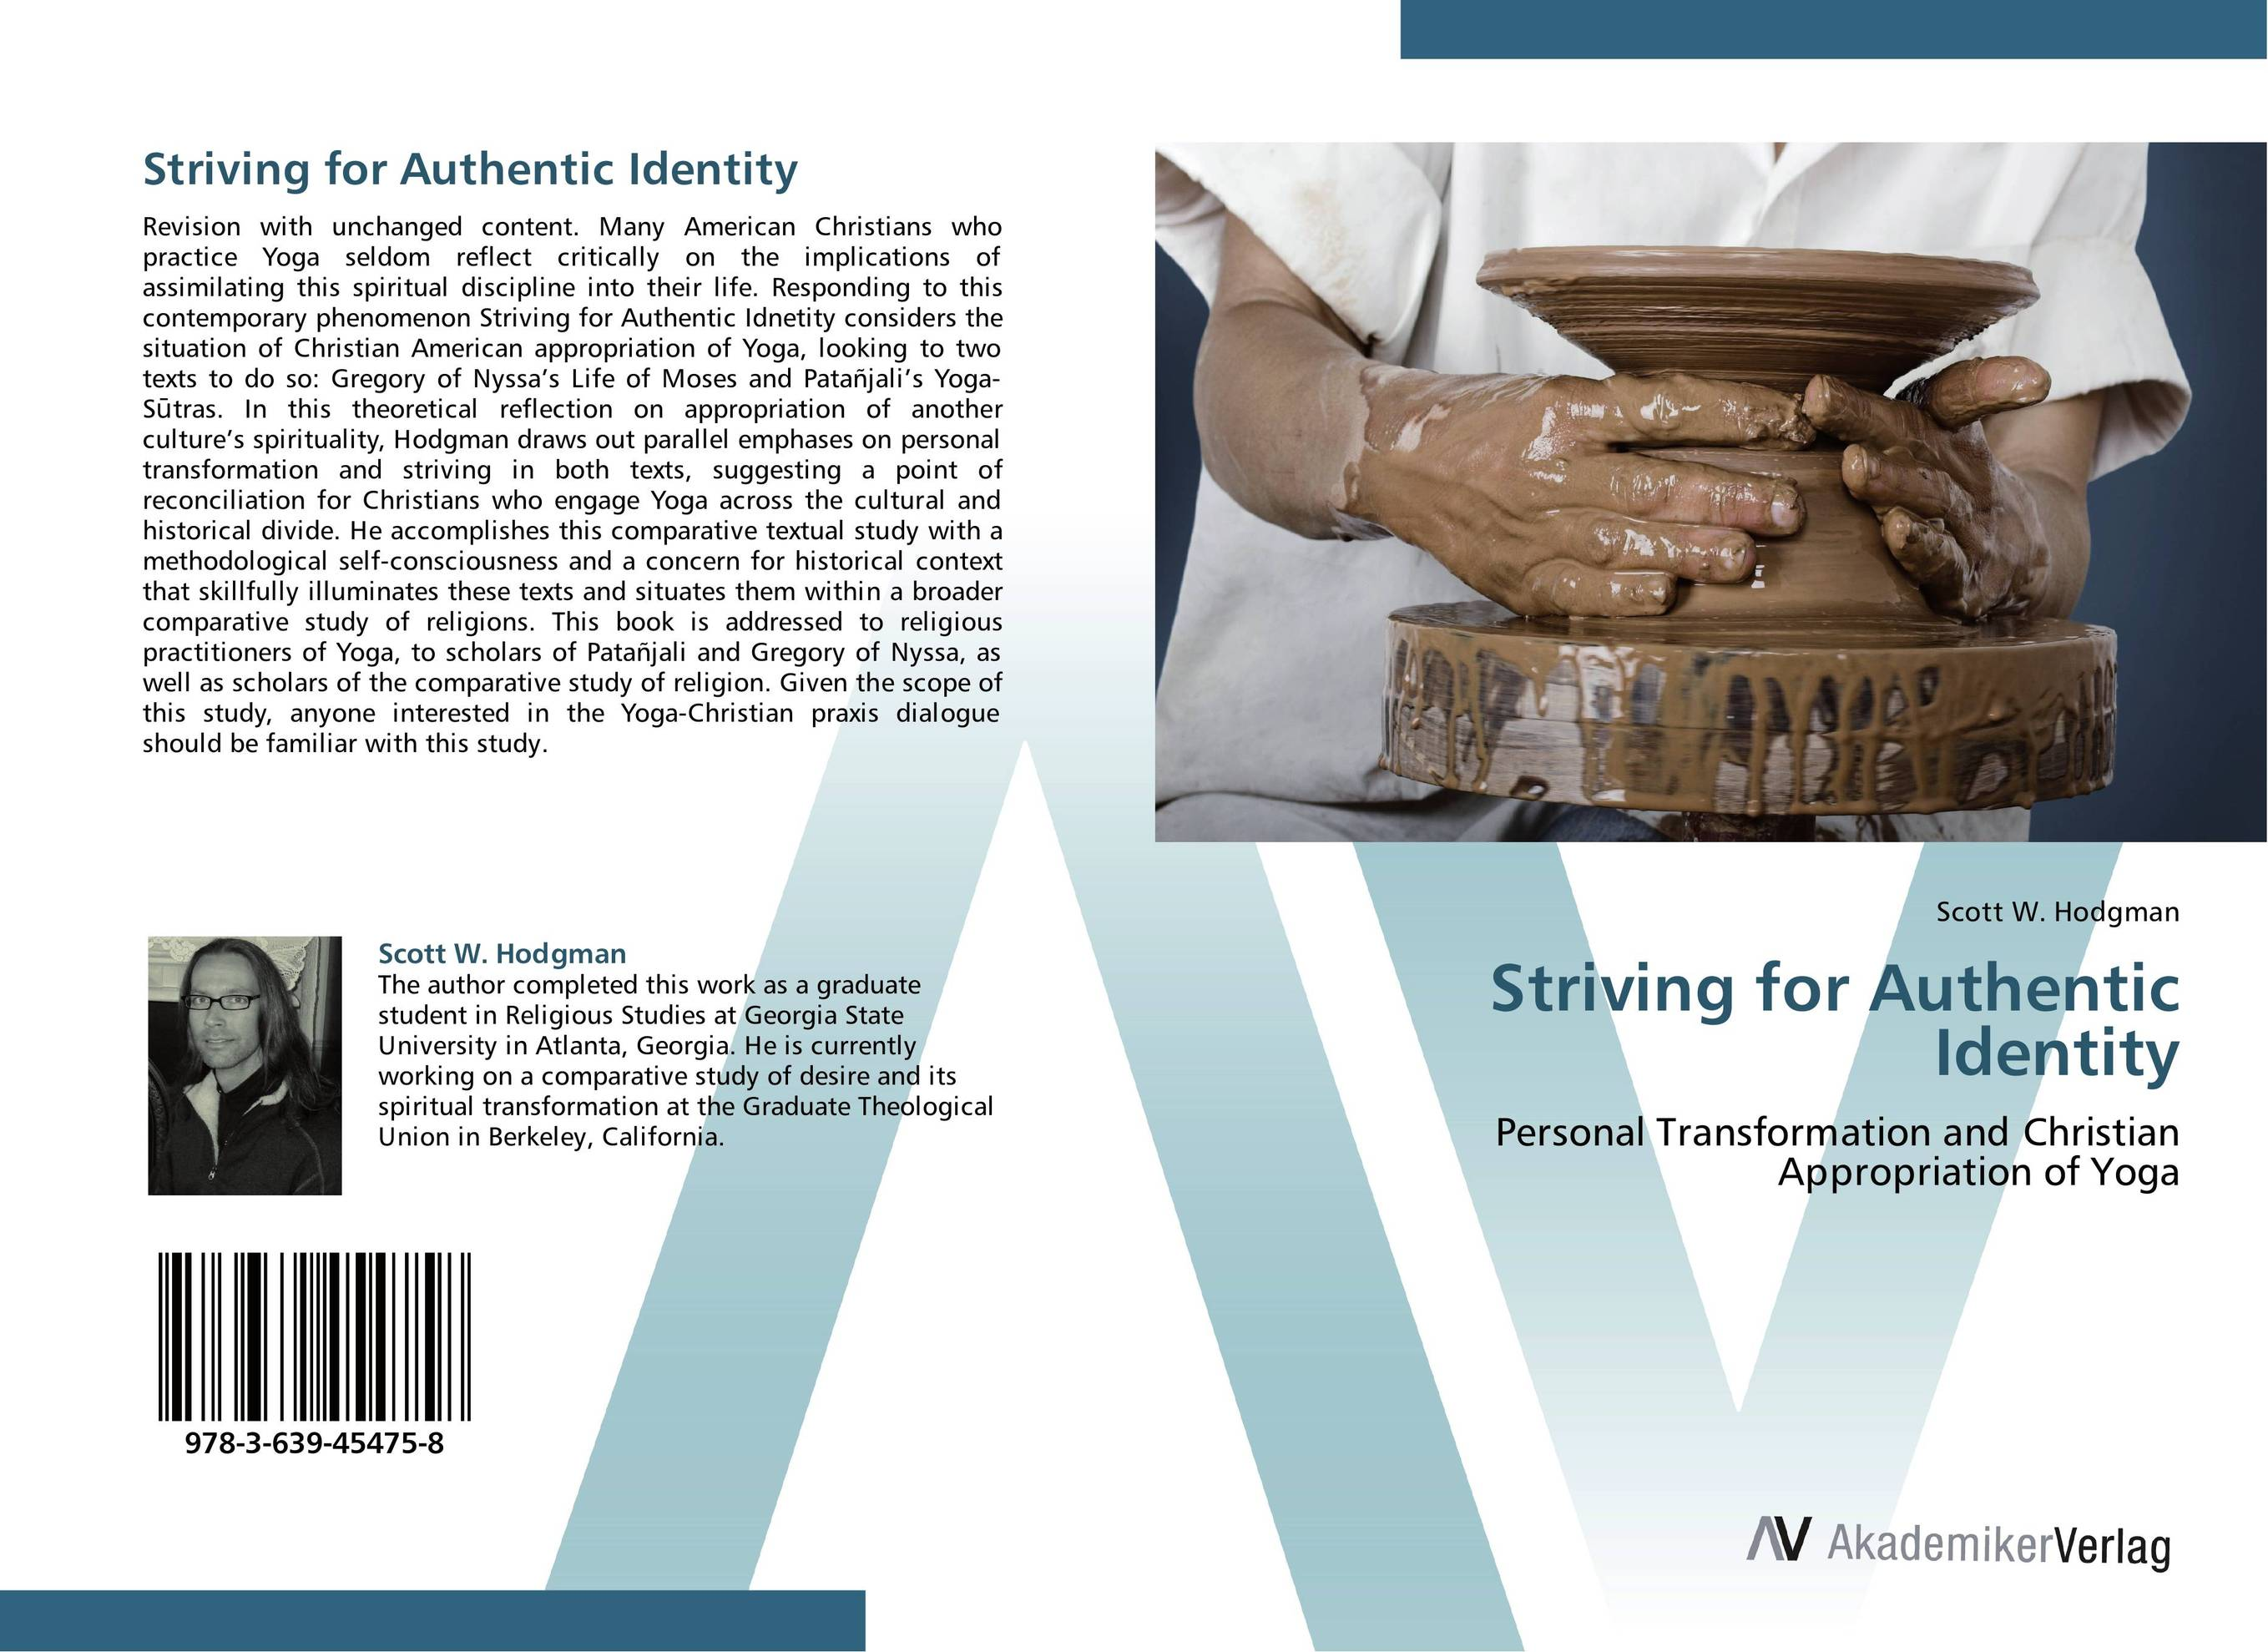 Striving for Authentic Identity yoga for transformation